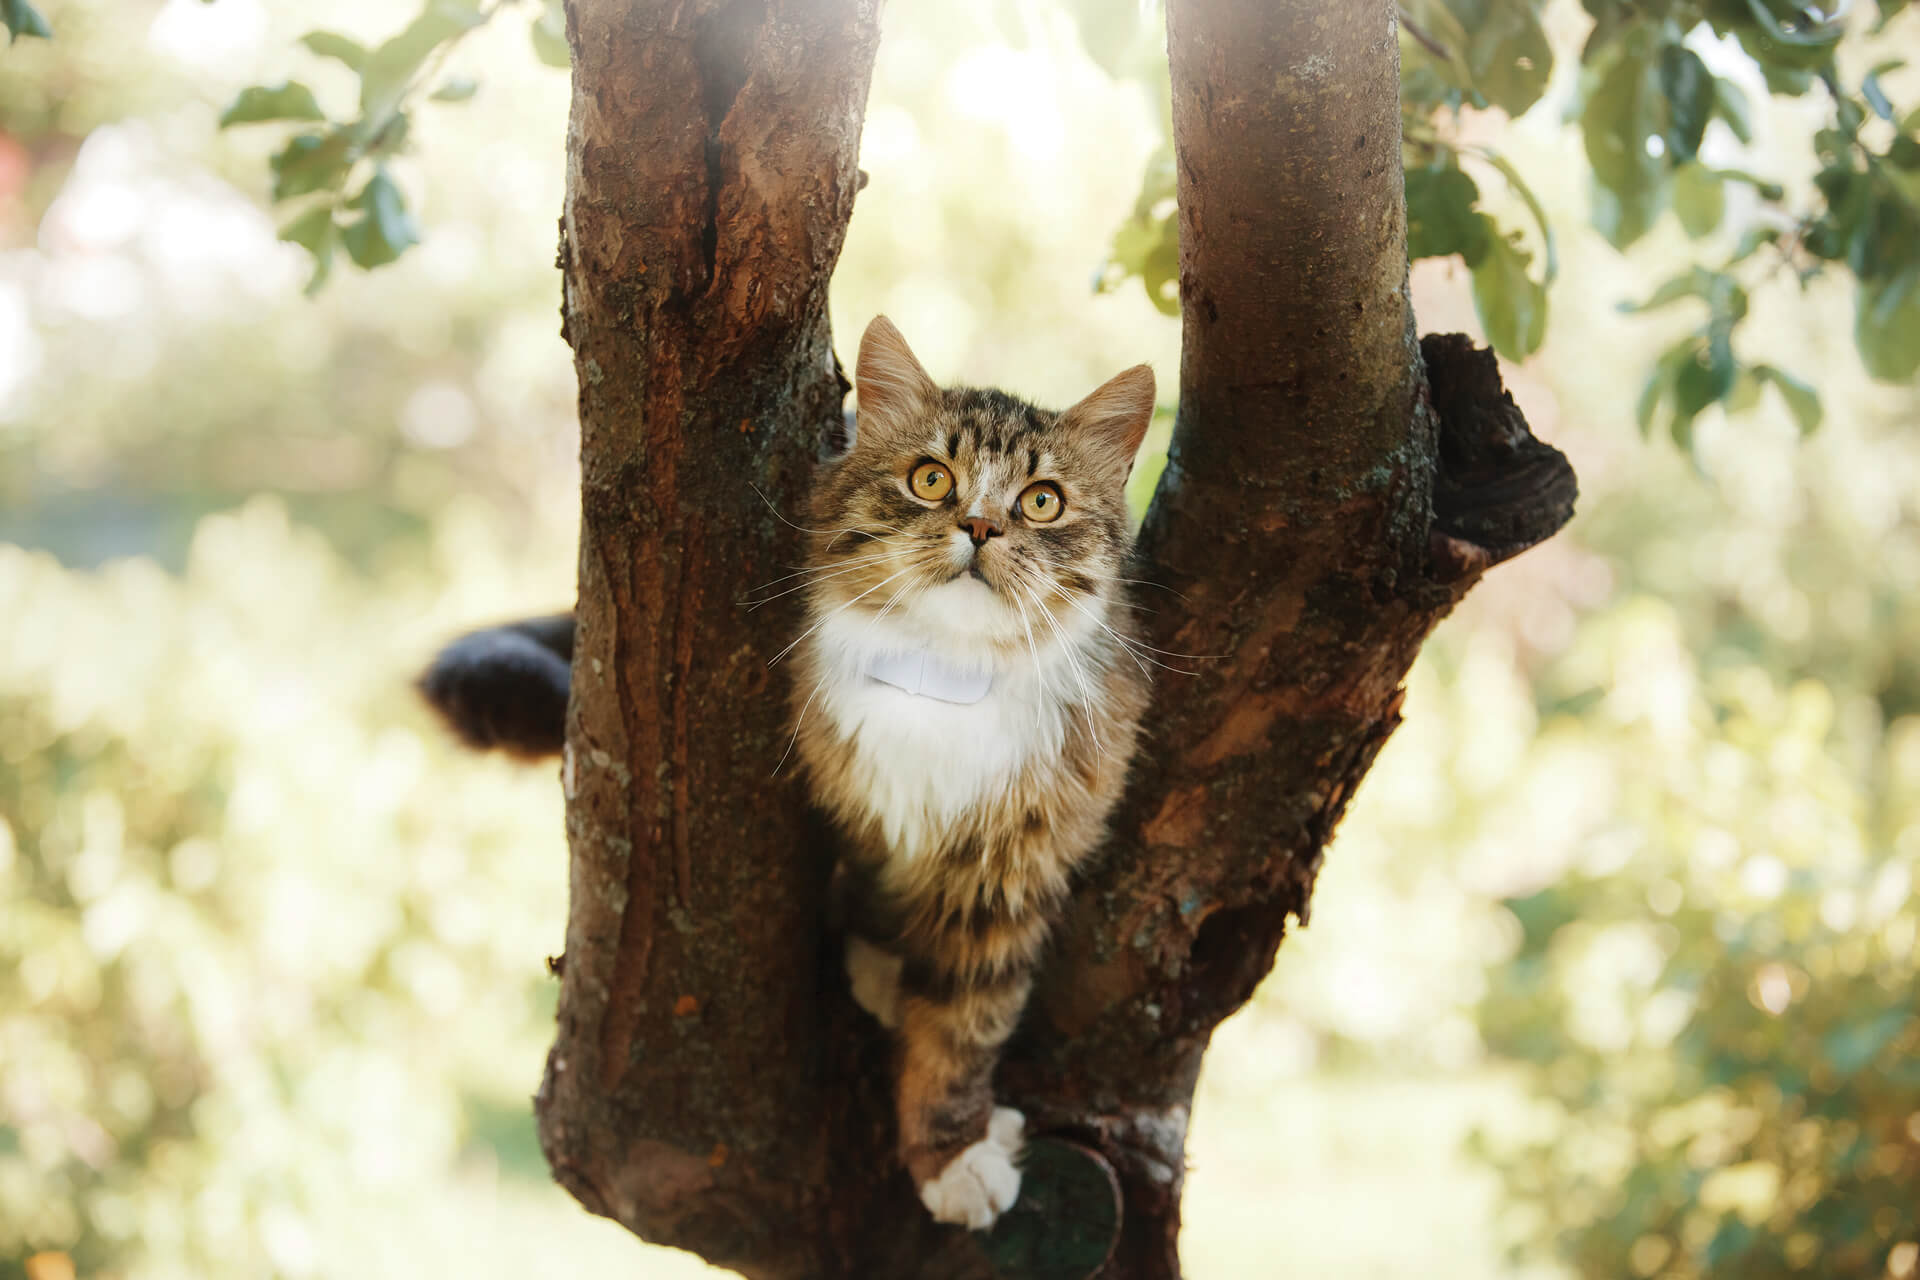 New Kitten Checklist: How To Prepare for Your New Cat